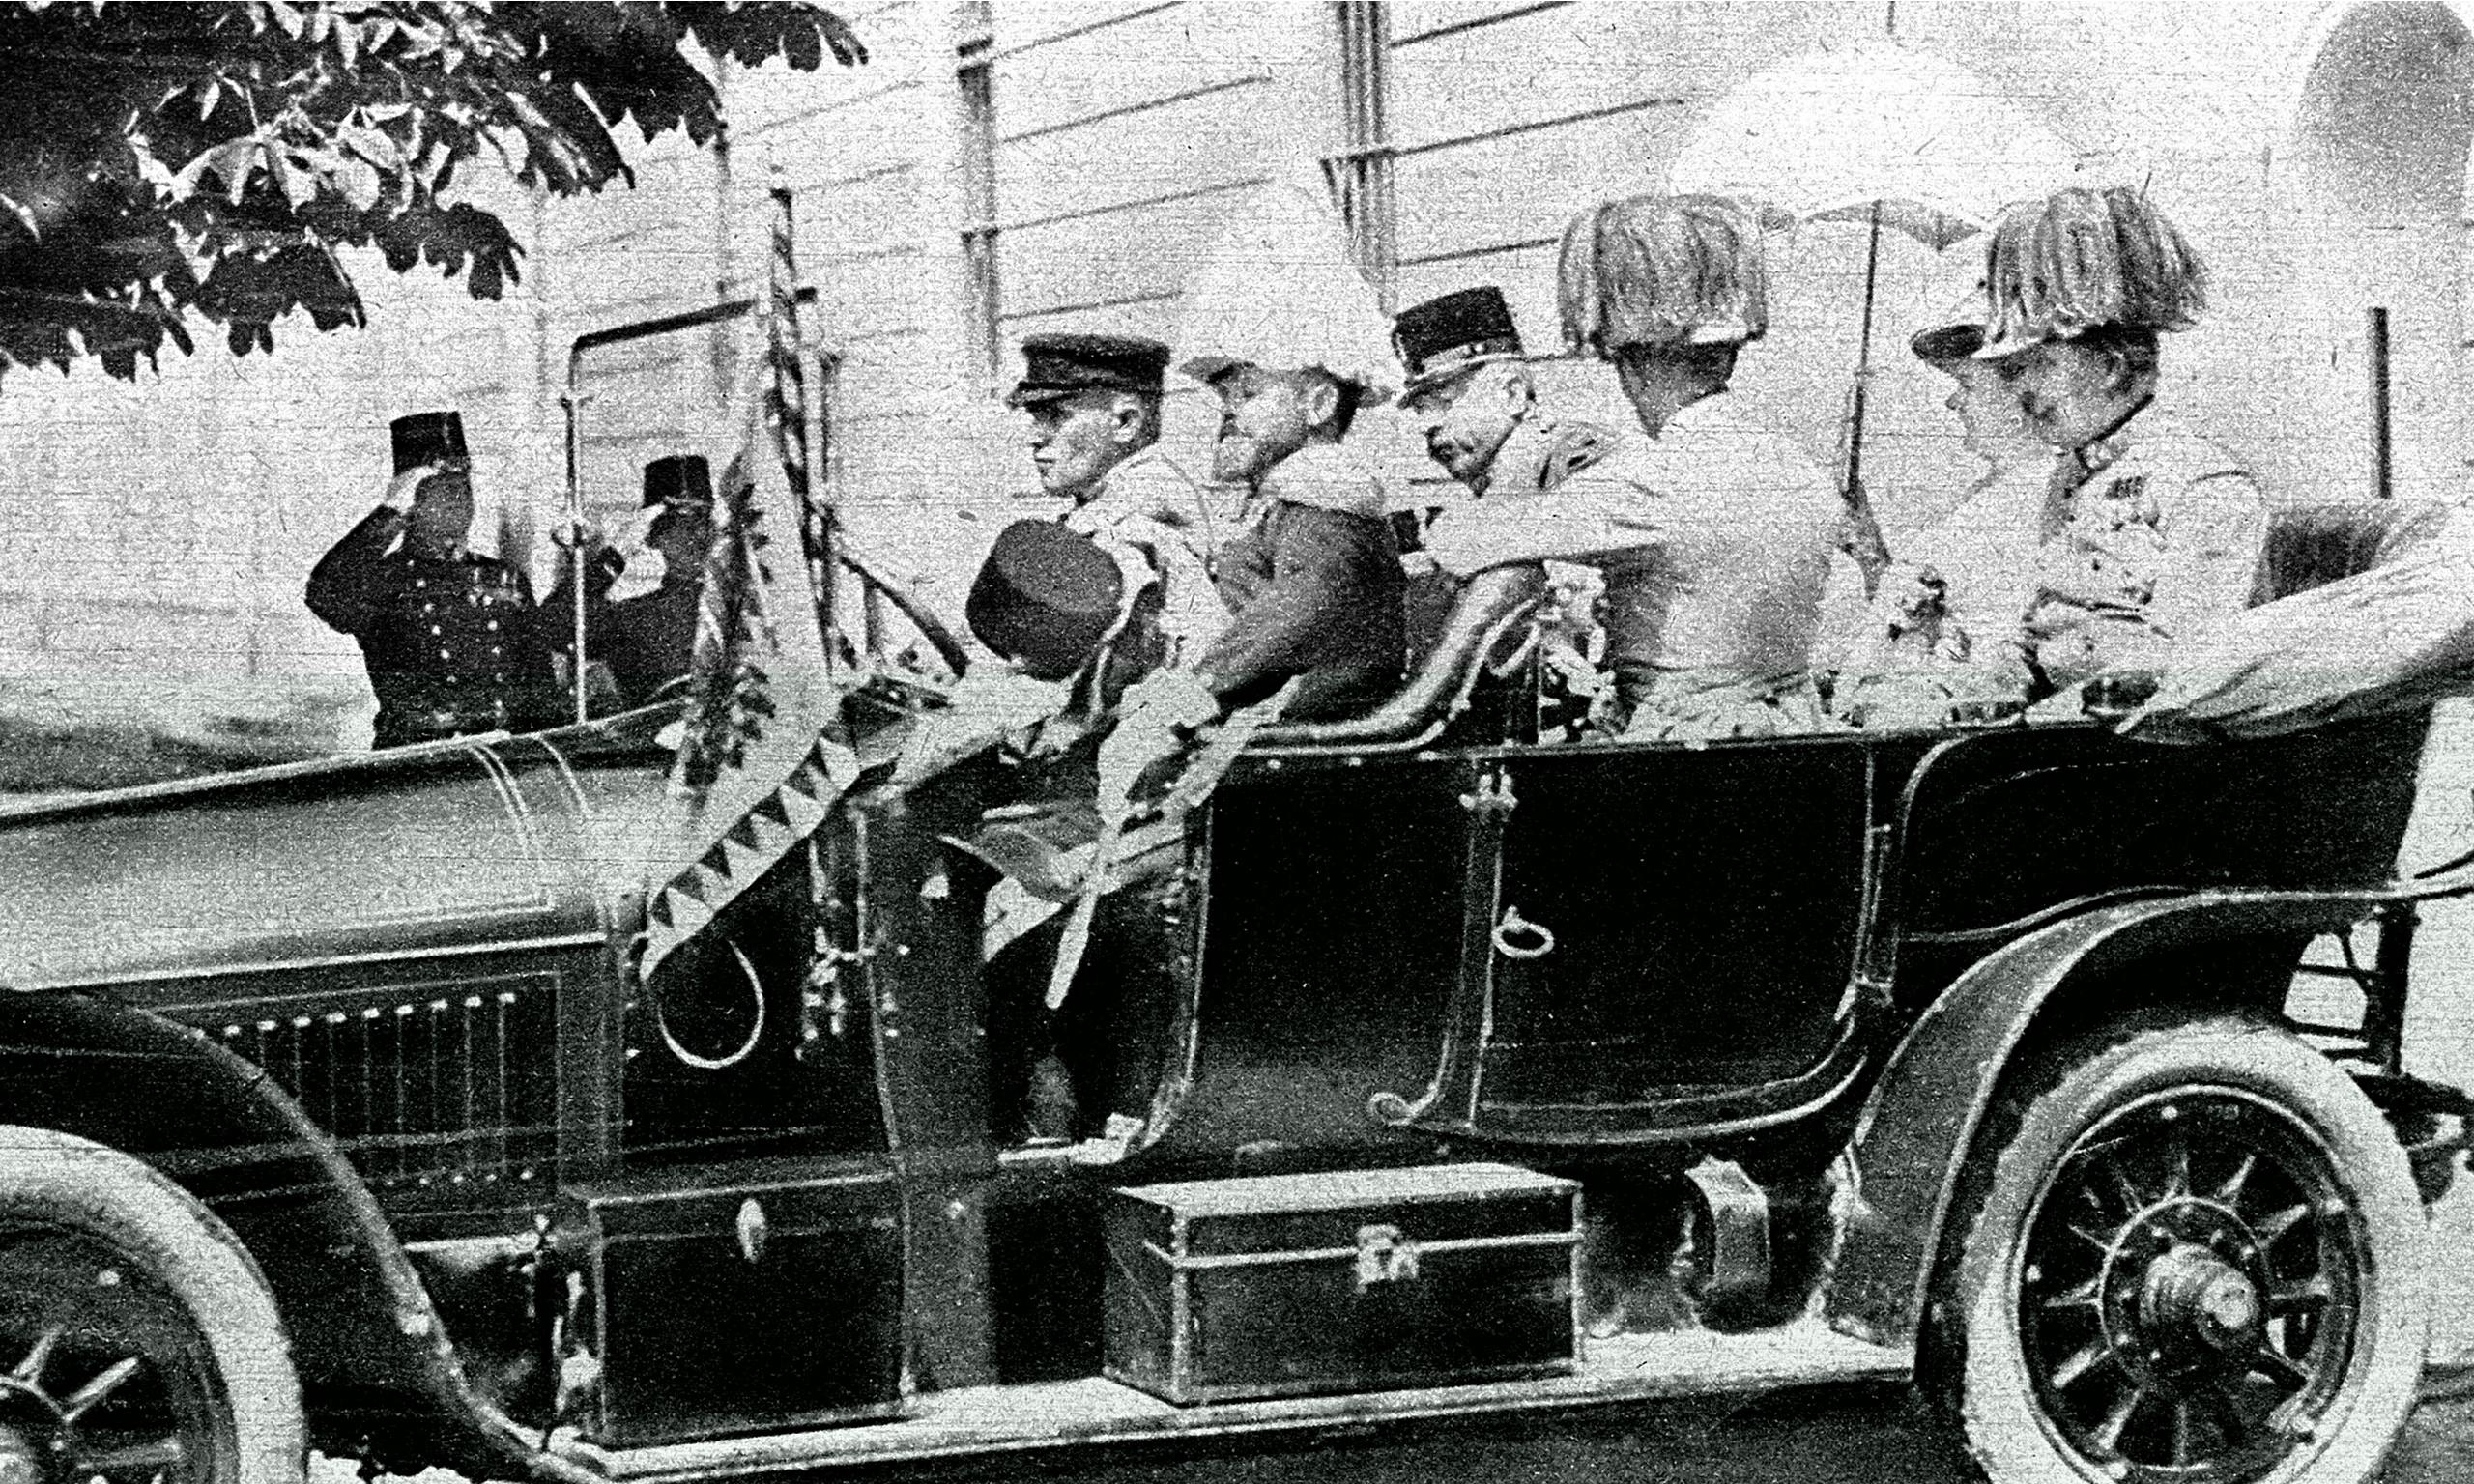 an analysis of the assassination of francis ferdinand background It was the most famous too, since the murder of archduke franz  ranks as one of  the worst failures of intelligence analysis in all history.